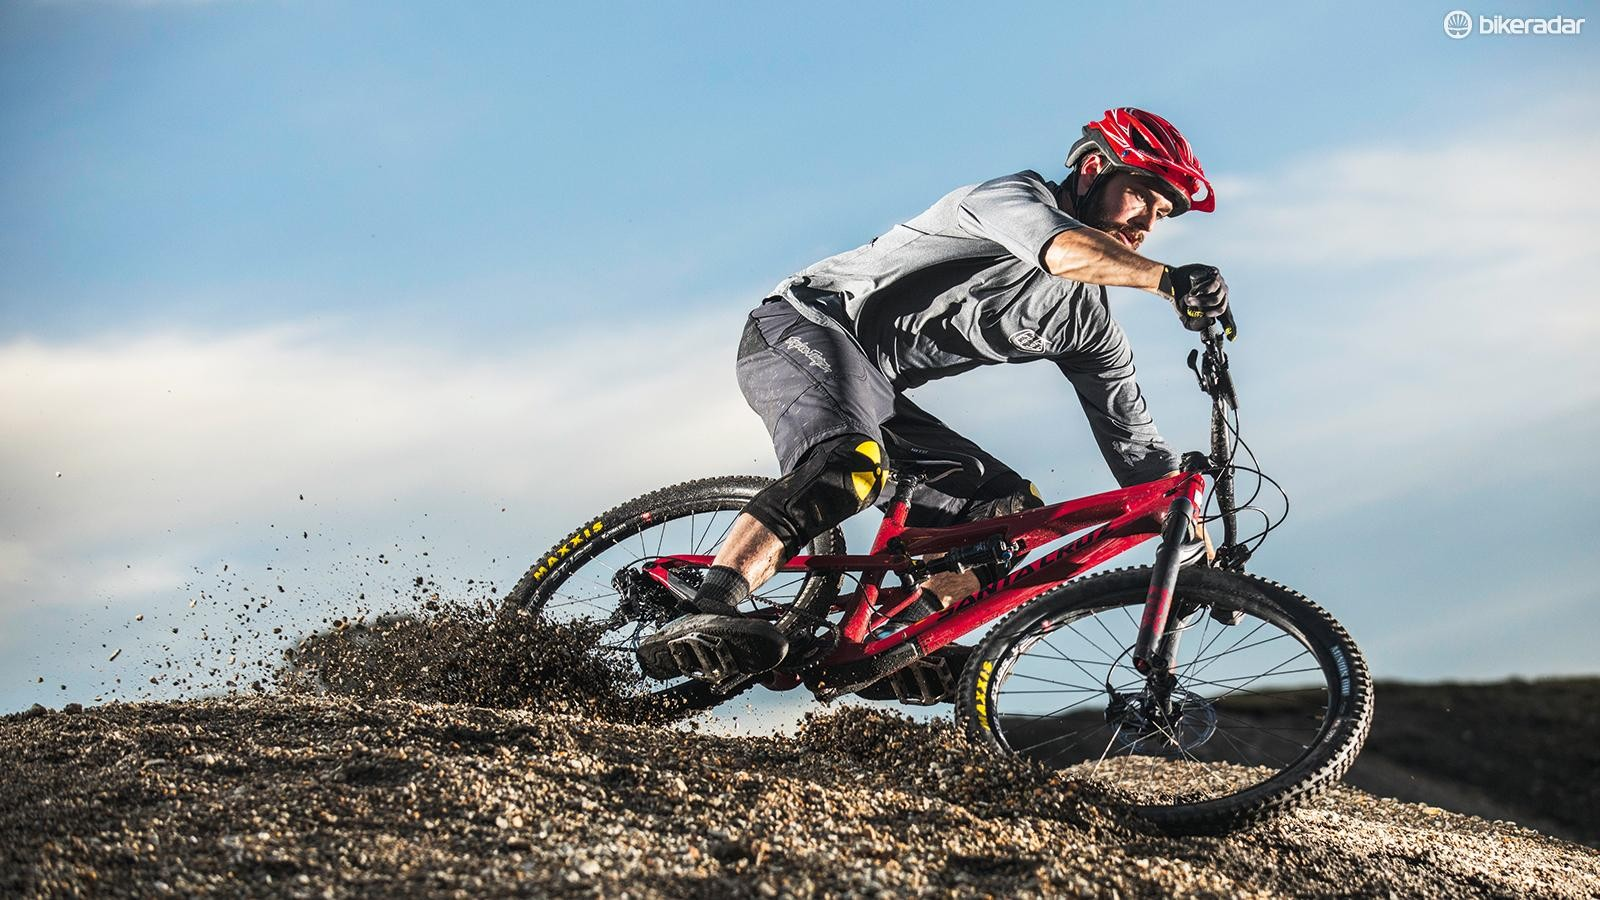 This is a bike that's designed to be poppedand played around on rather than justhidden behind as you plough through stuff